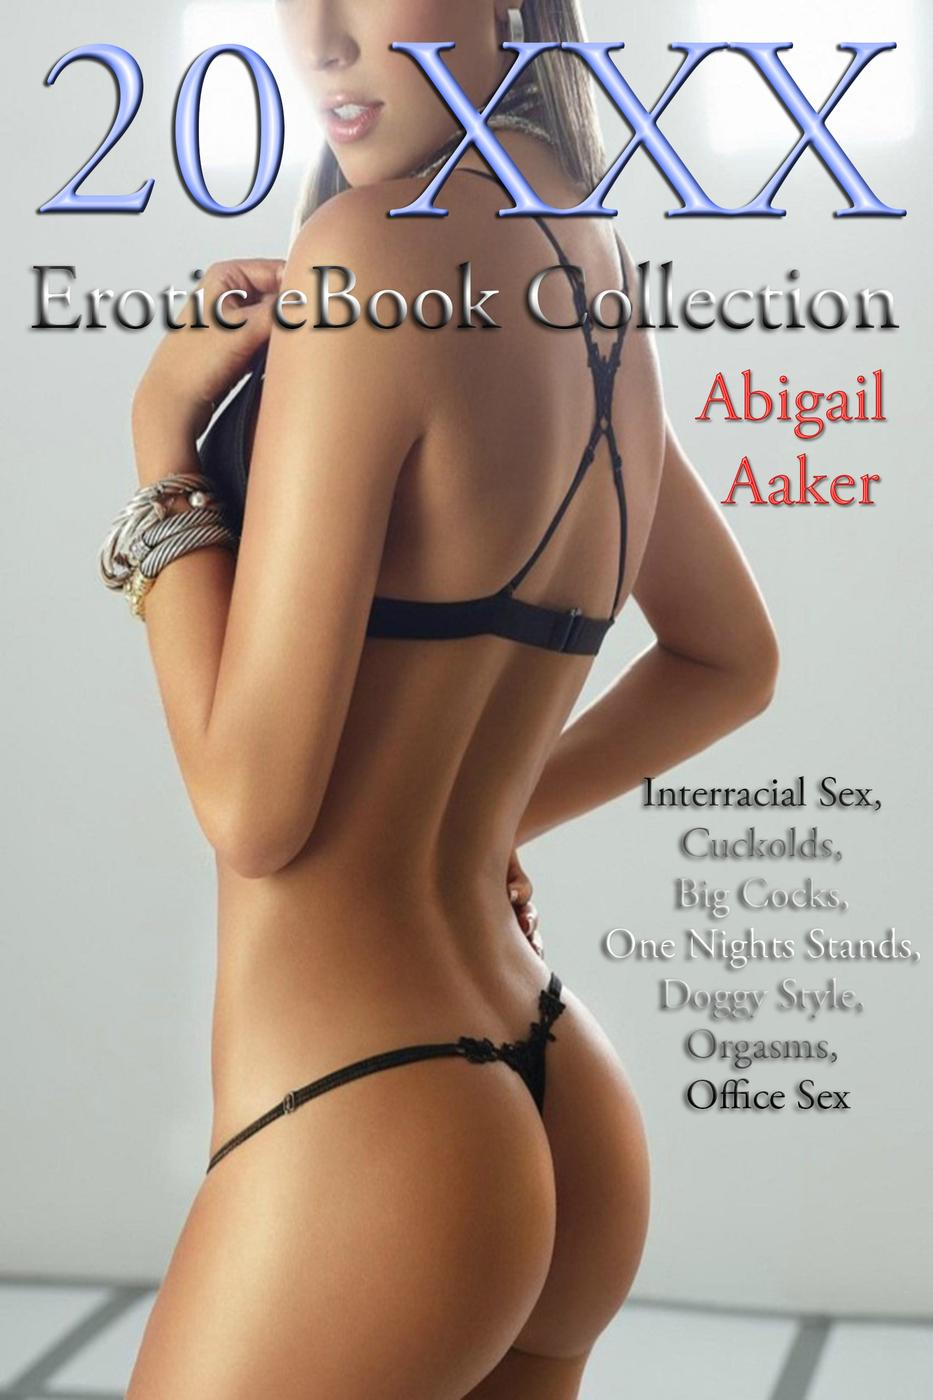 20 XXX Erotic eBook Collection -  Interracial Sex, Cuckolds, Big Cocks, One Nights Stands, Orgasms